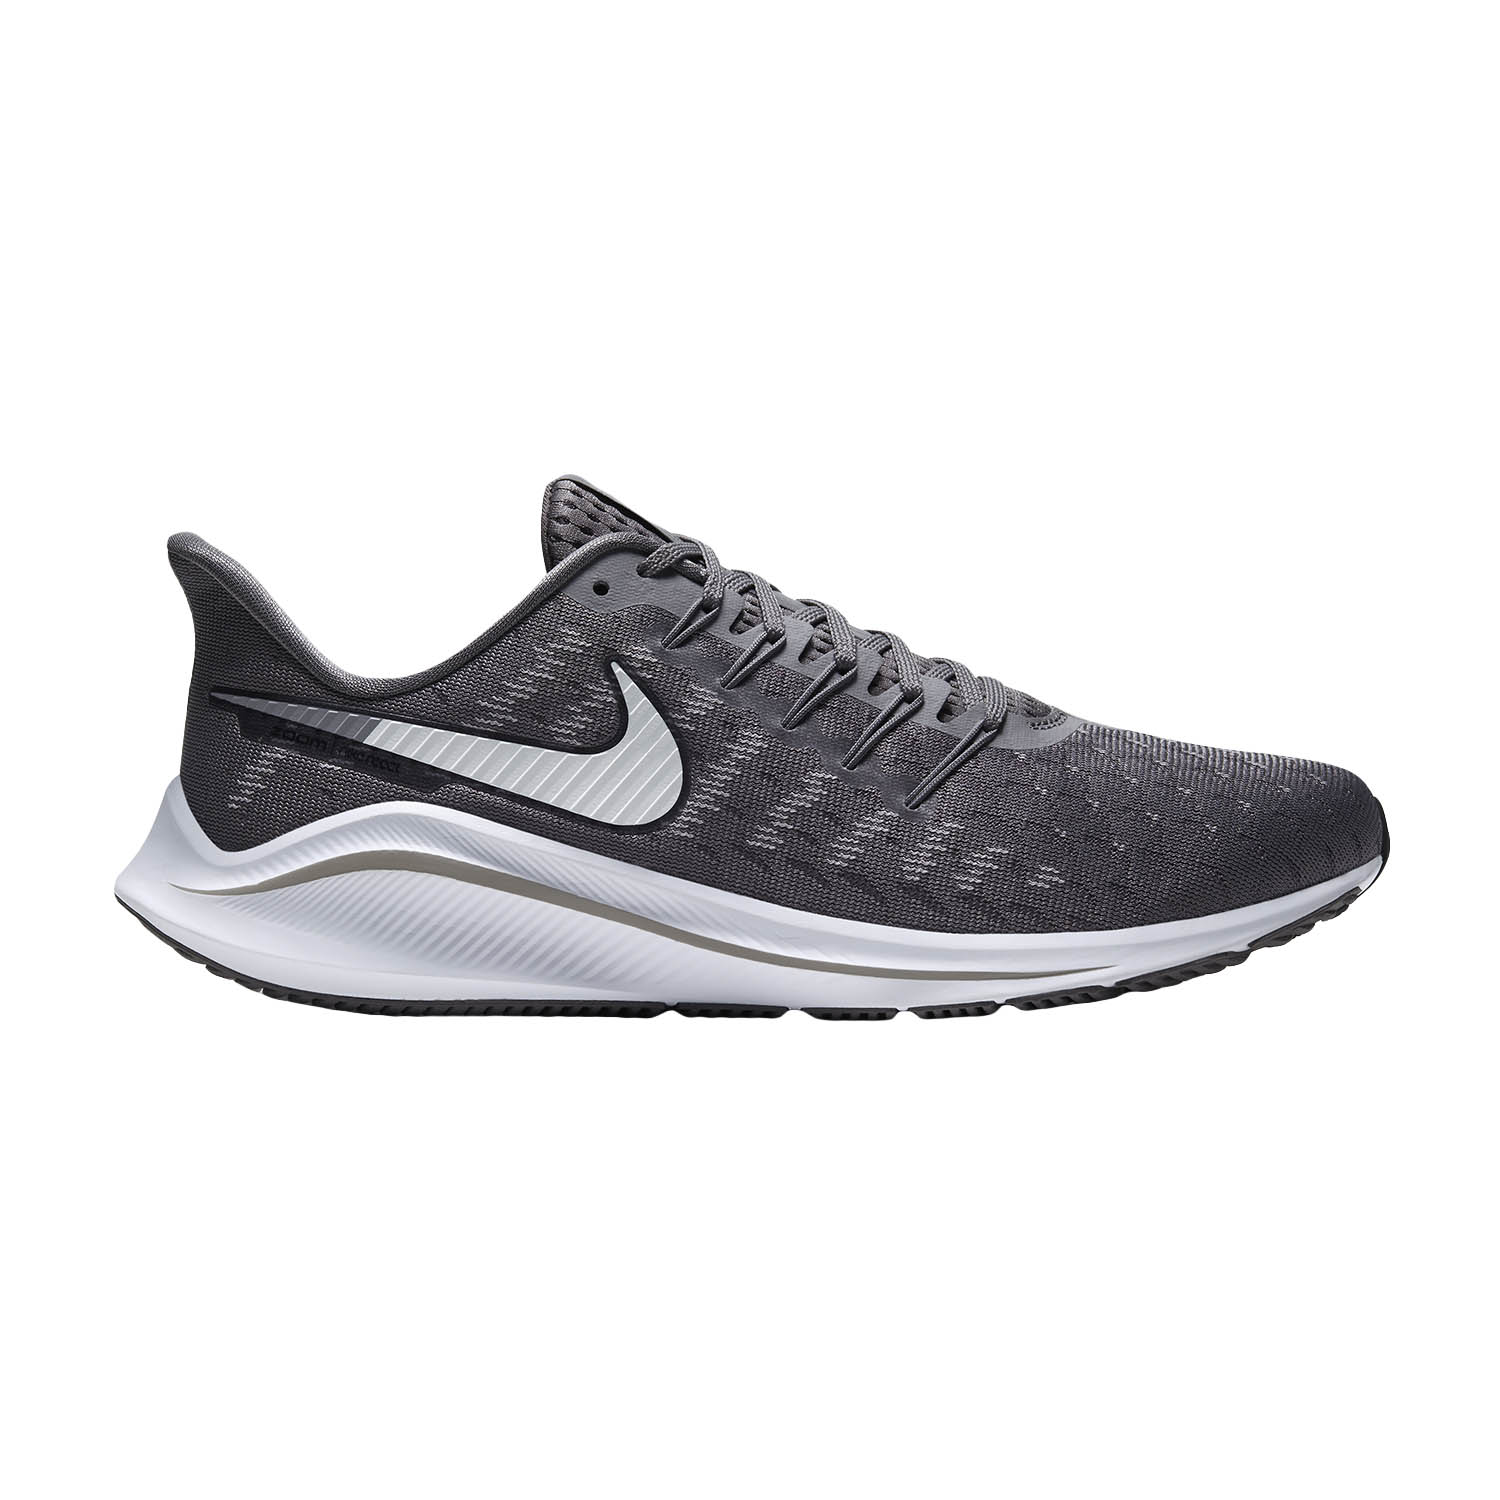 Nike Air Zoom Vomero 14 - Gunsmoke/White/Oil Grey/Atmosphere Grey